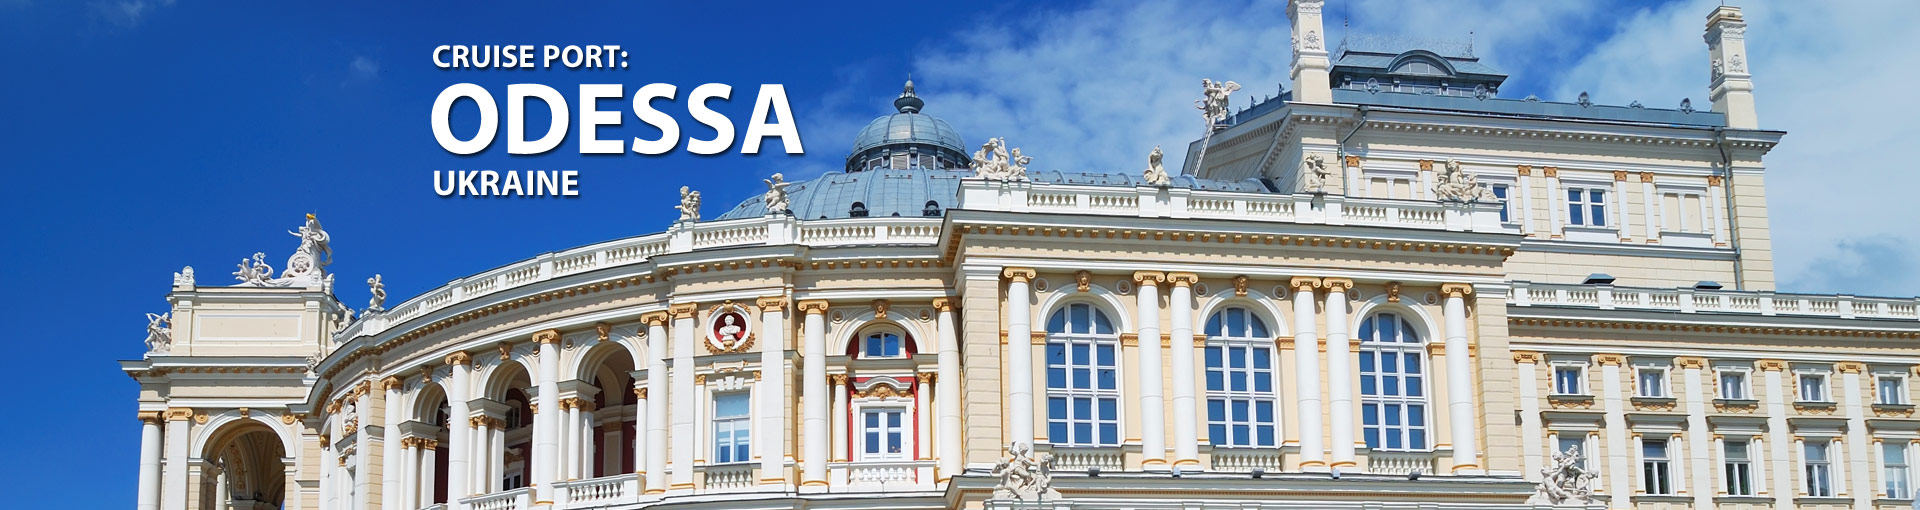 Cruises from Odessa, Ukraine